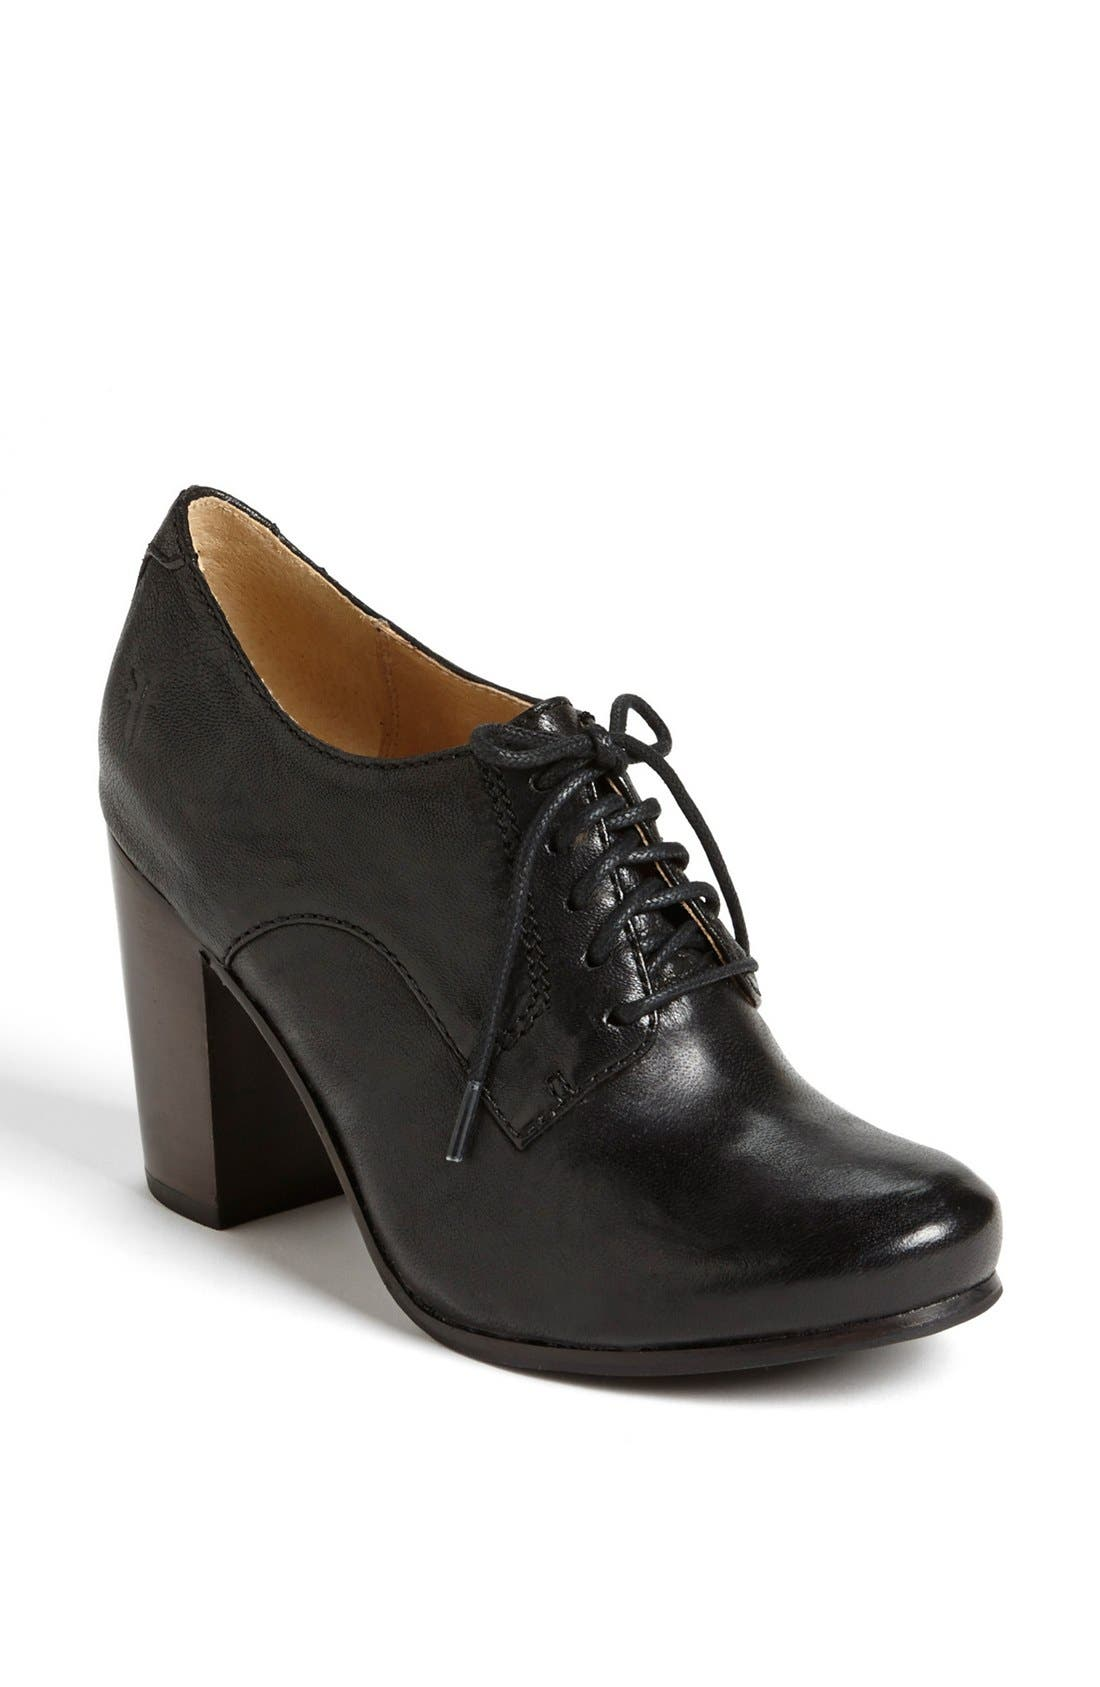 Alternate Image 1 Selected - Frye 'Carson Oxford' Pump